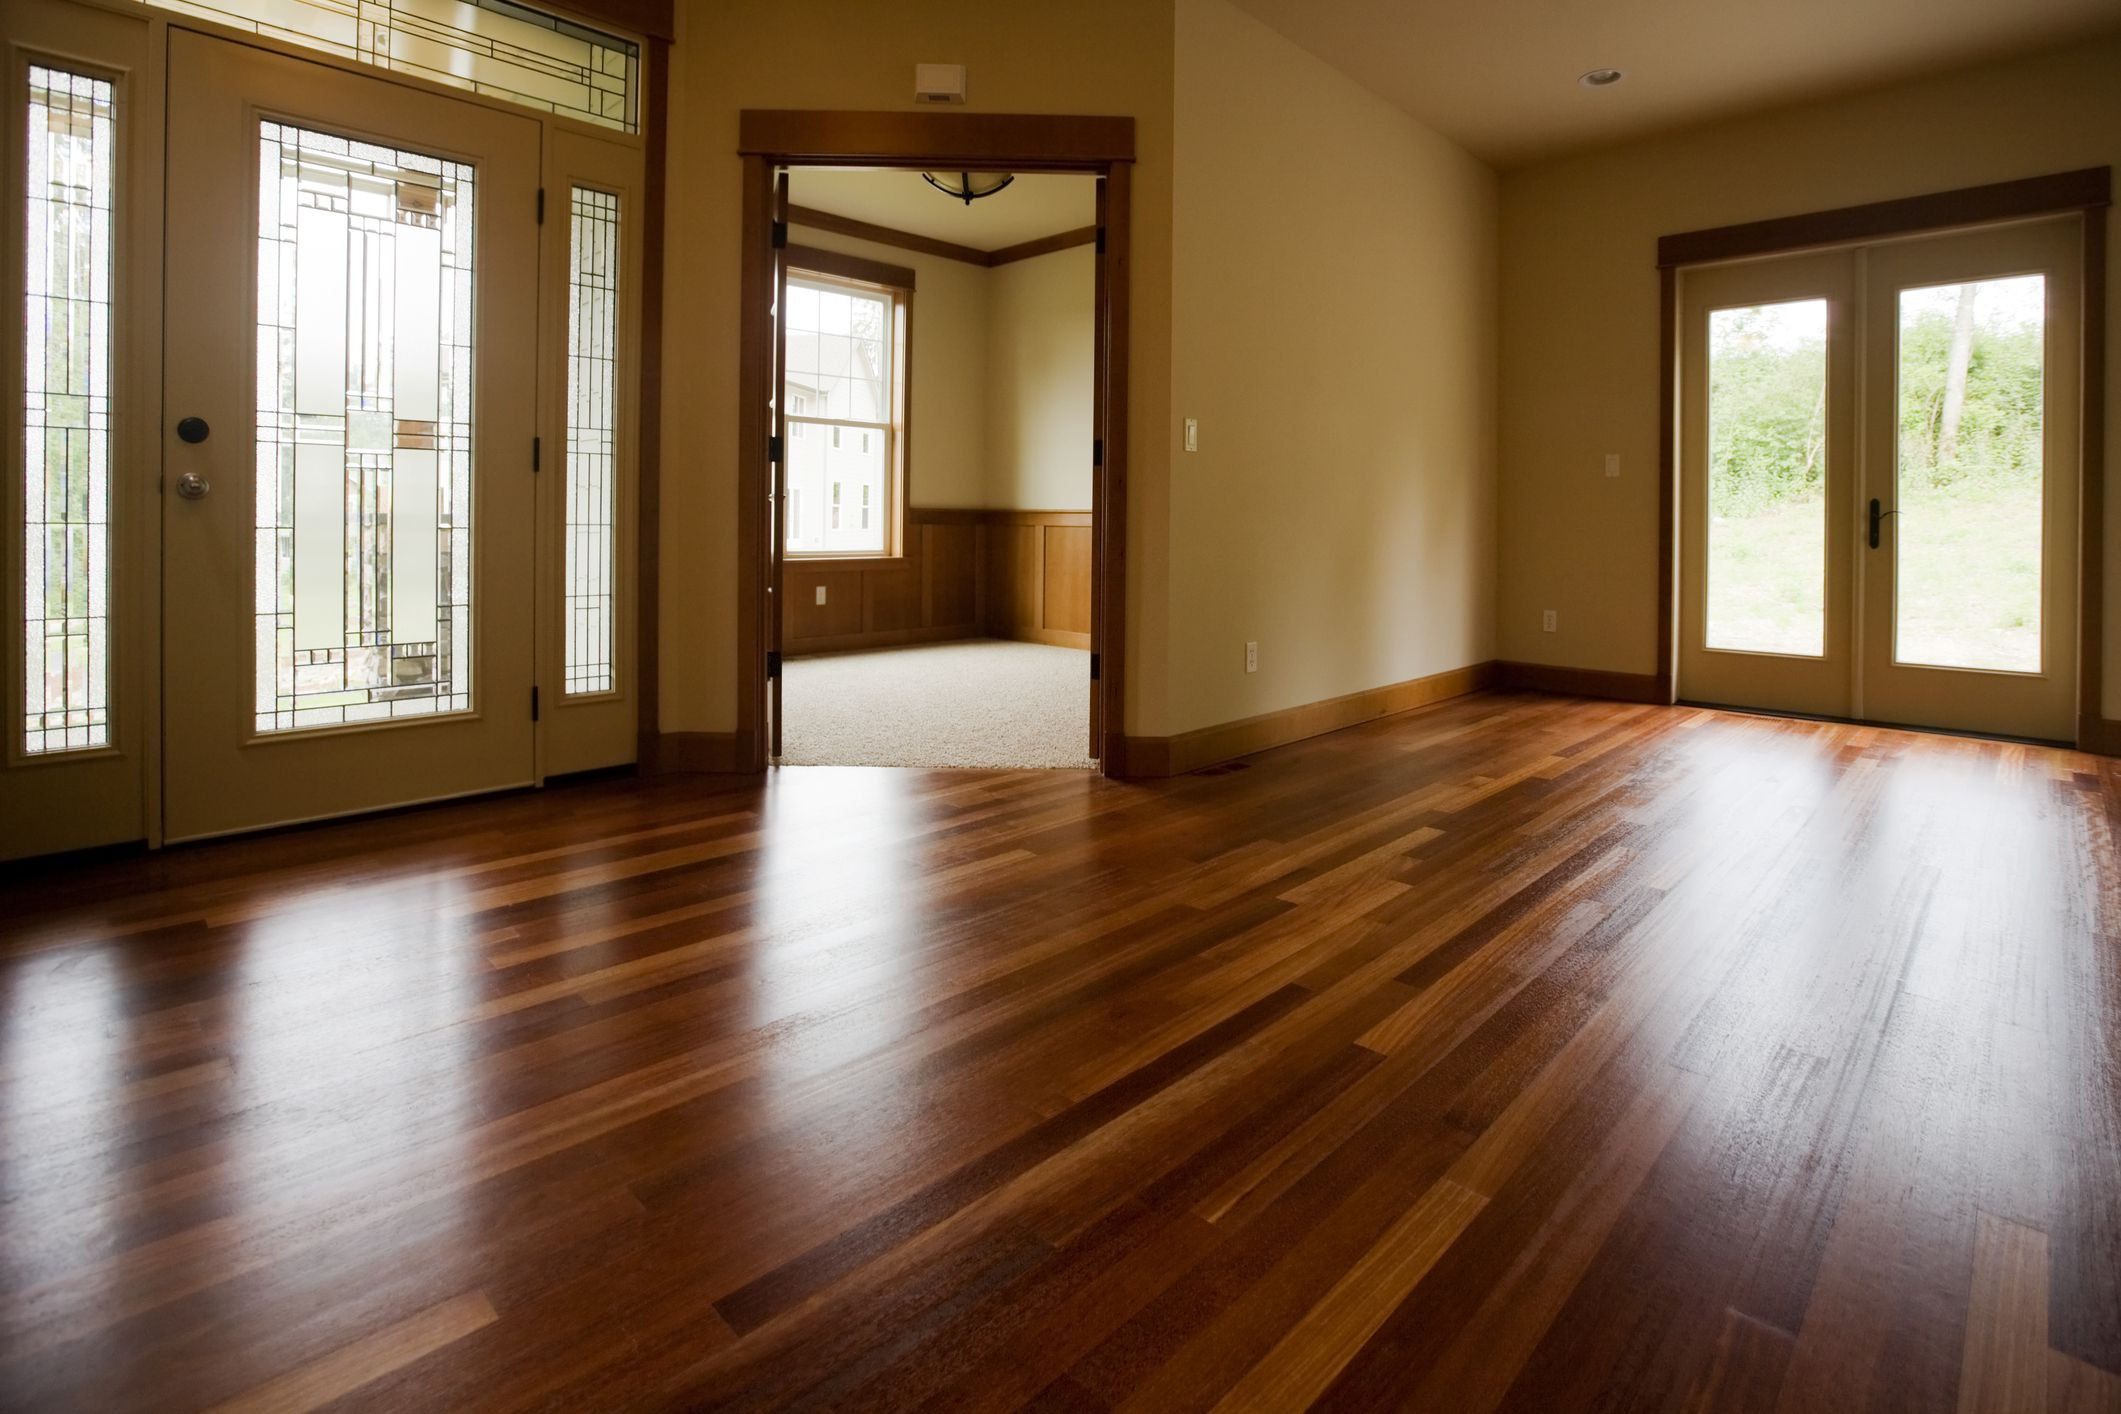 bruce 5 16 hardwood flooring of types of hardwood flooring buyers guide throughout gettyimages 157332889 5886d8383df78c2ccd65d4e1